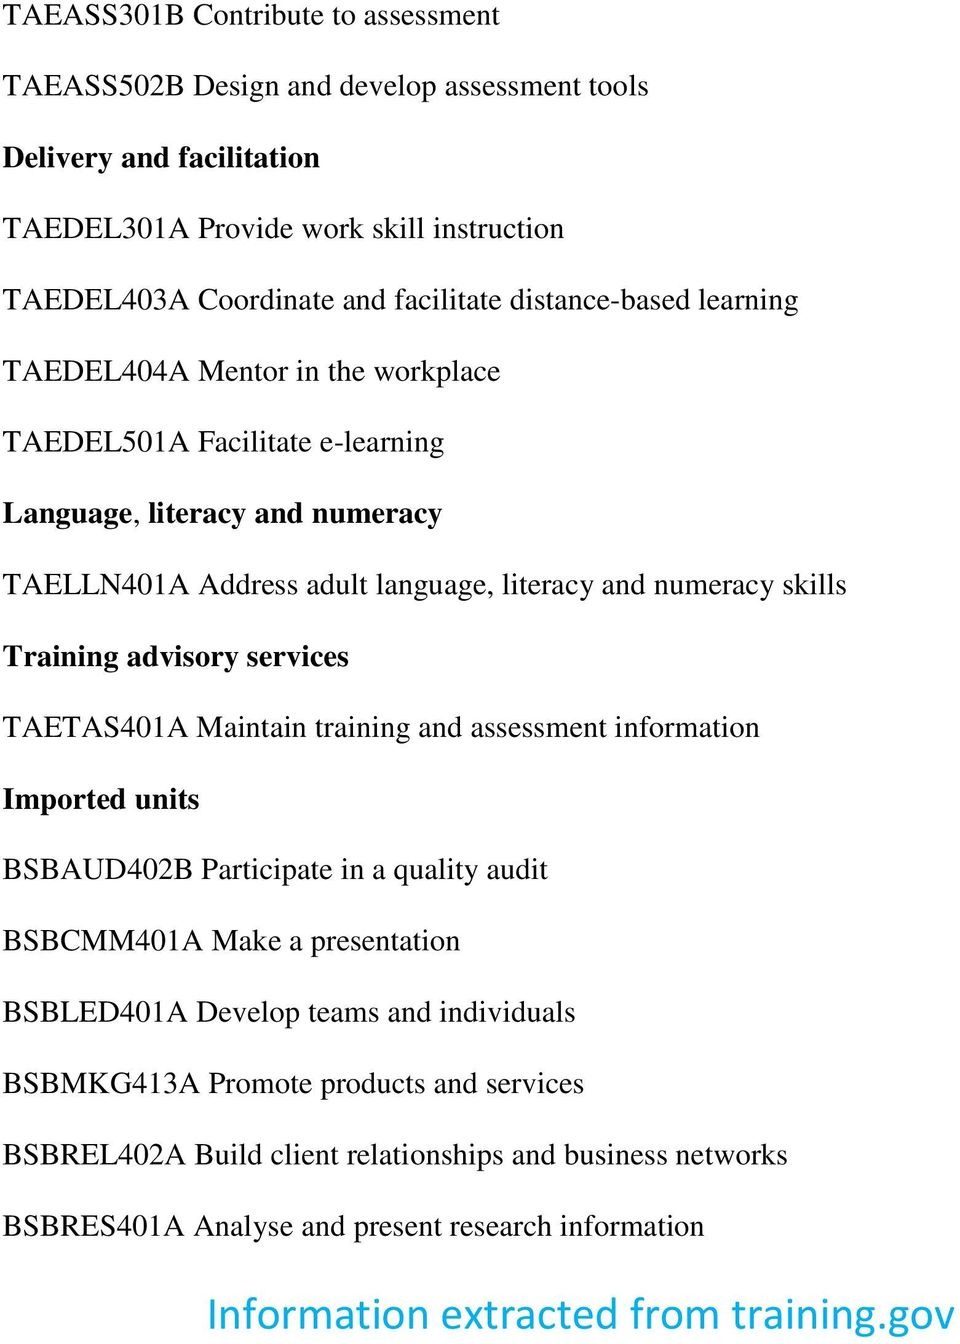 Training advisory services TAETAS401A Maintain training and assessment information Imported units BSBAUD402B Participate in a quality audit BSBCMM401A Make a presentation BSBLED401A Develop